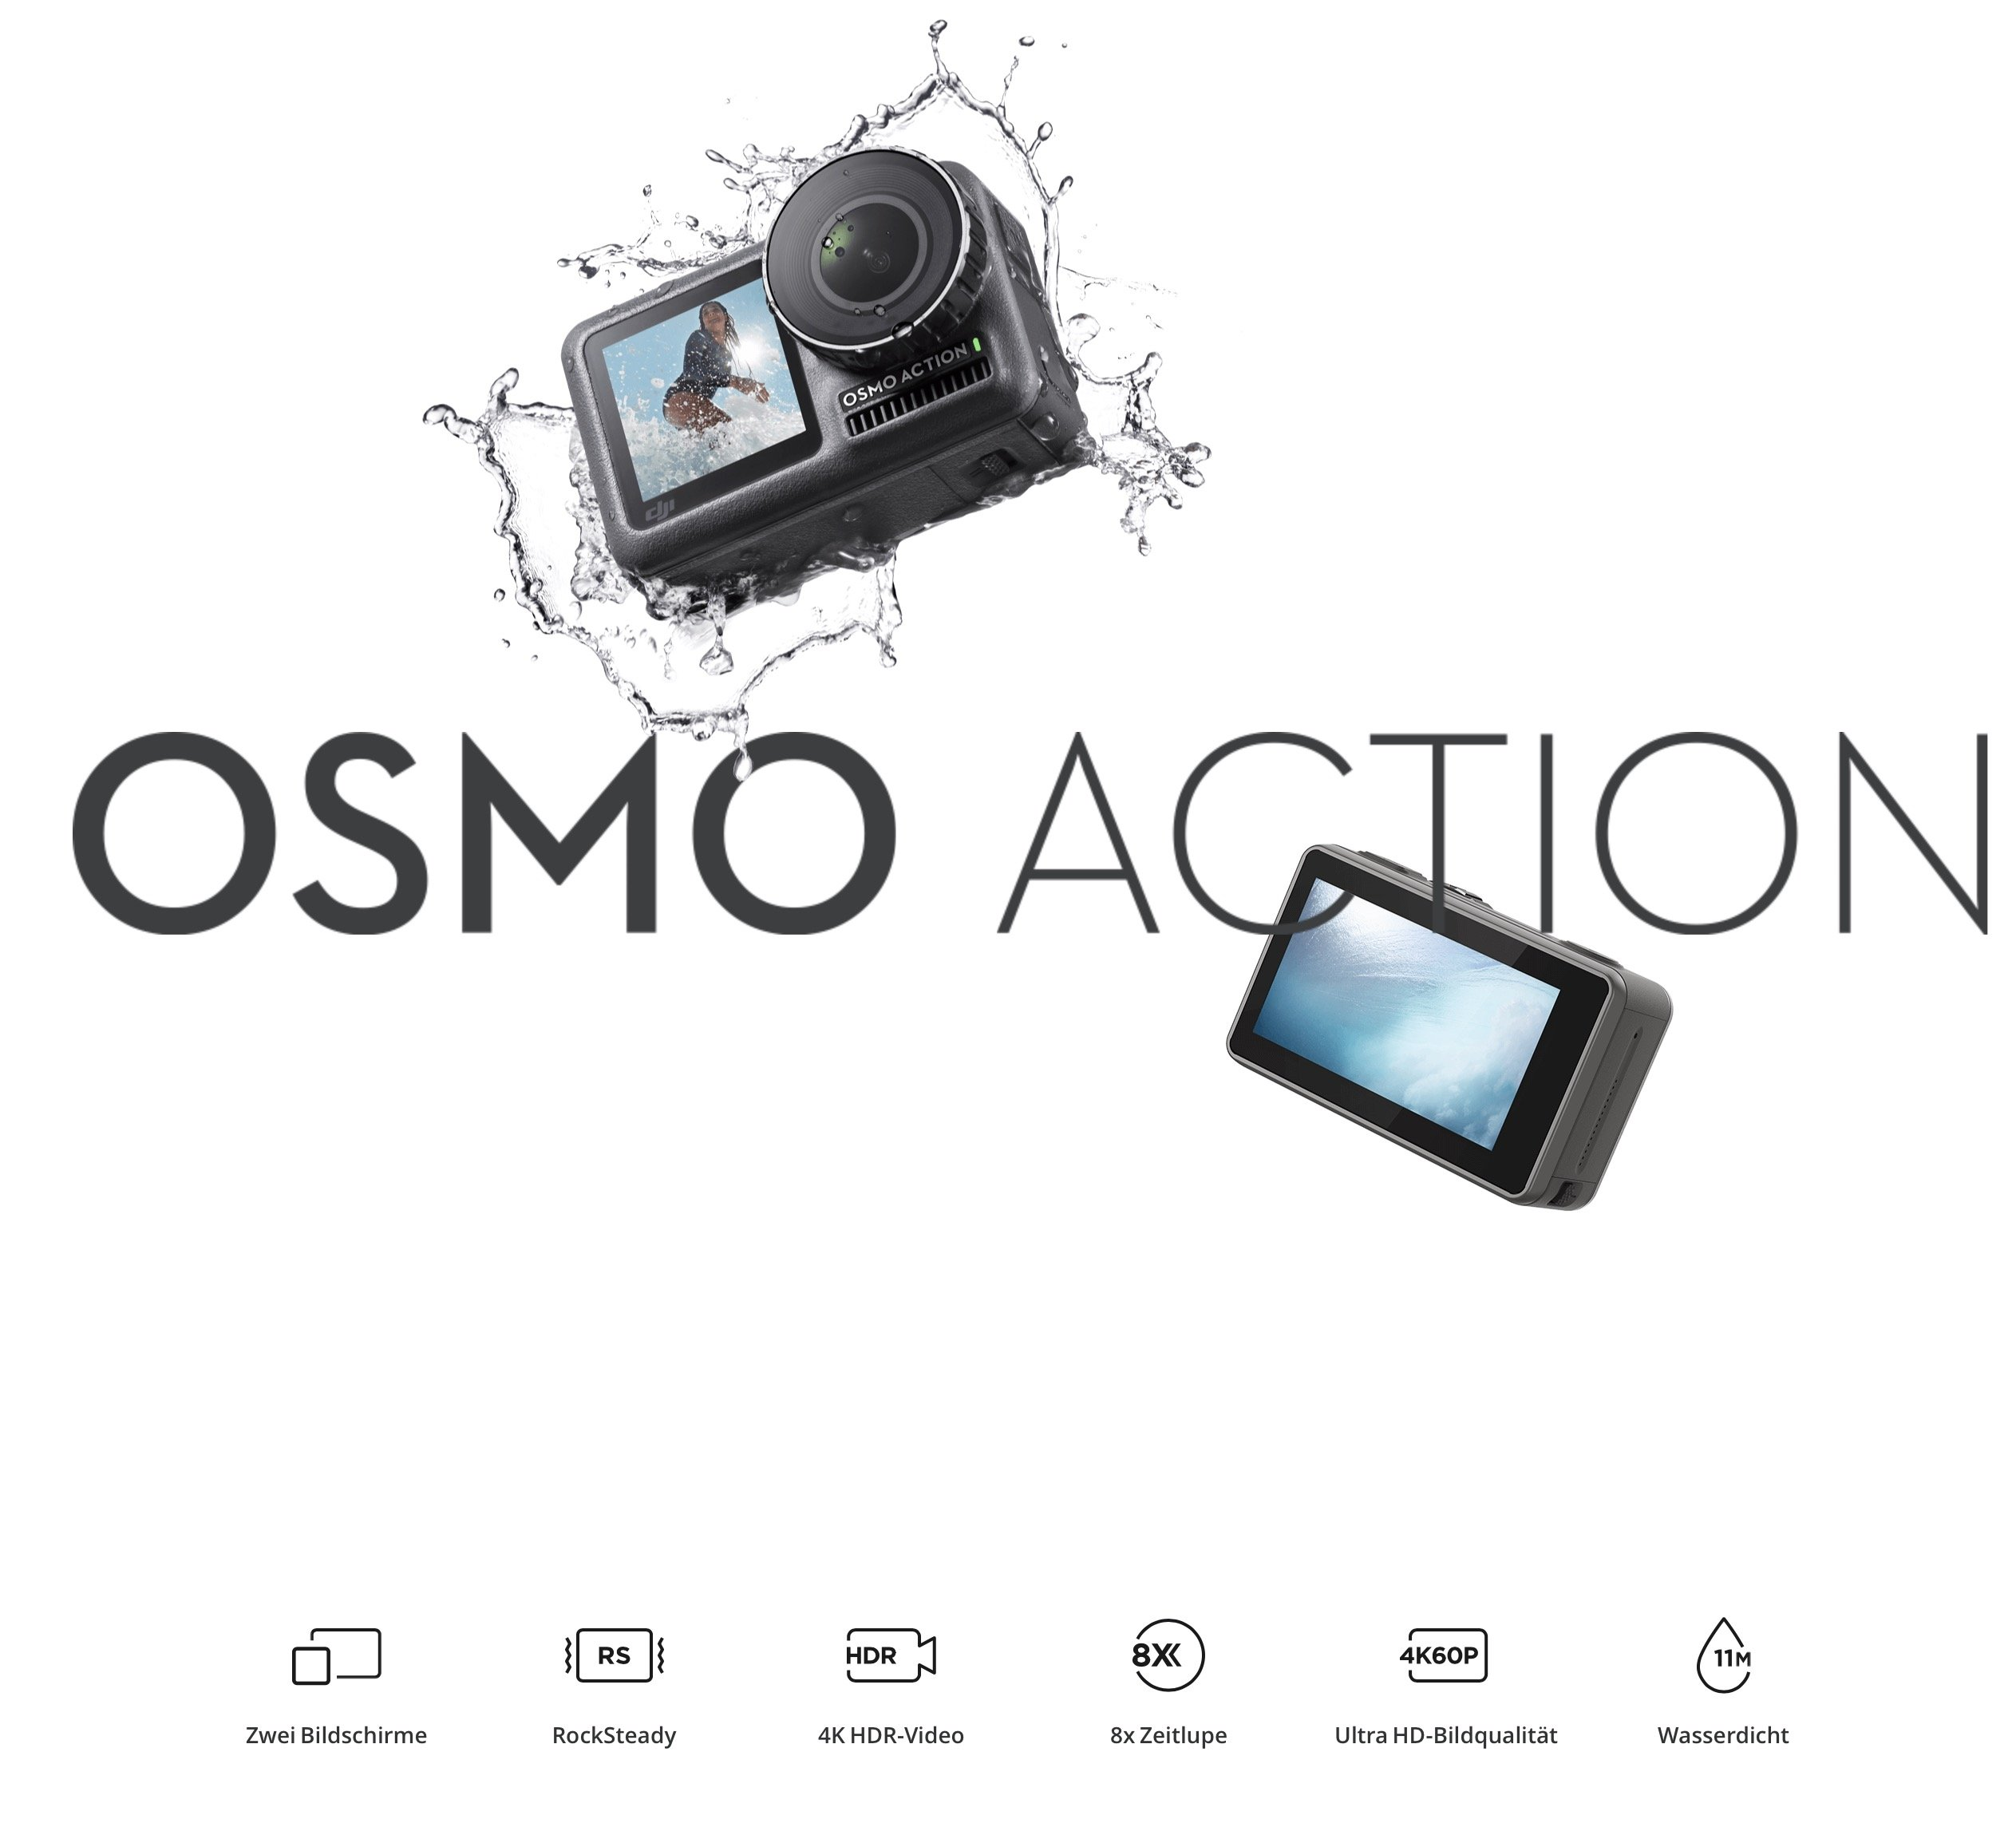 DJI Osmo Action - Vorstellung Teil 1 - featured